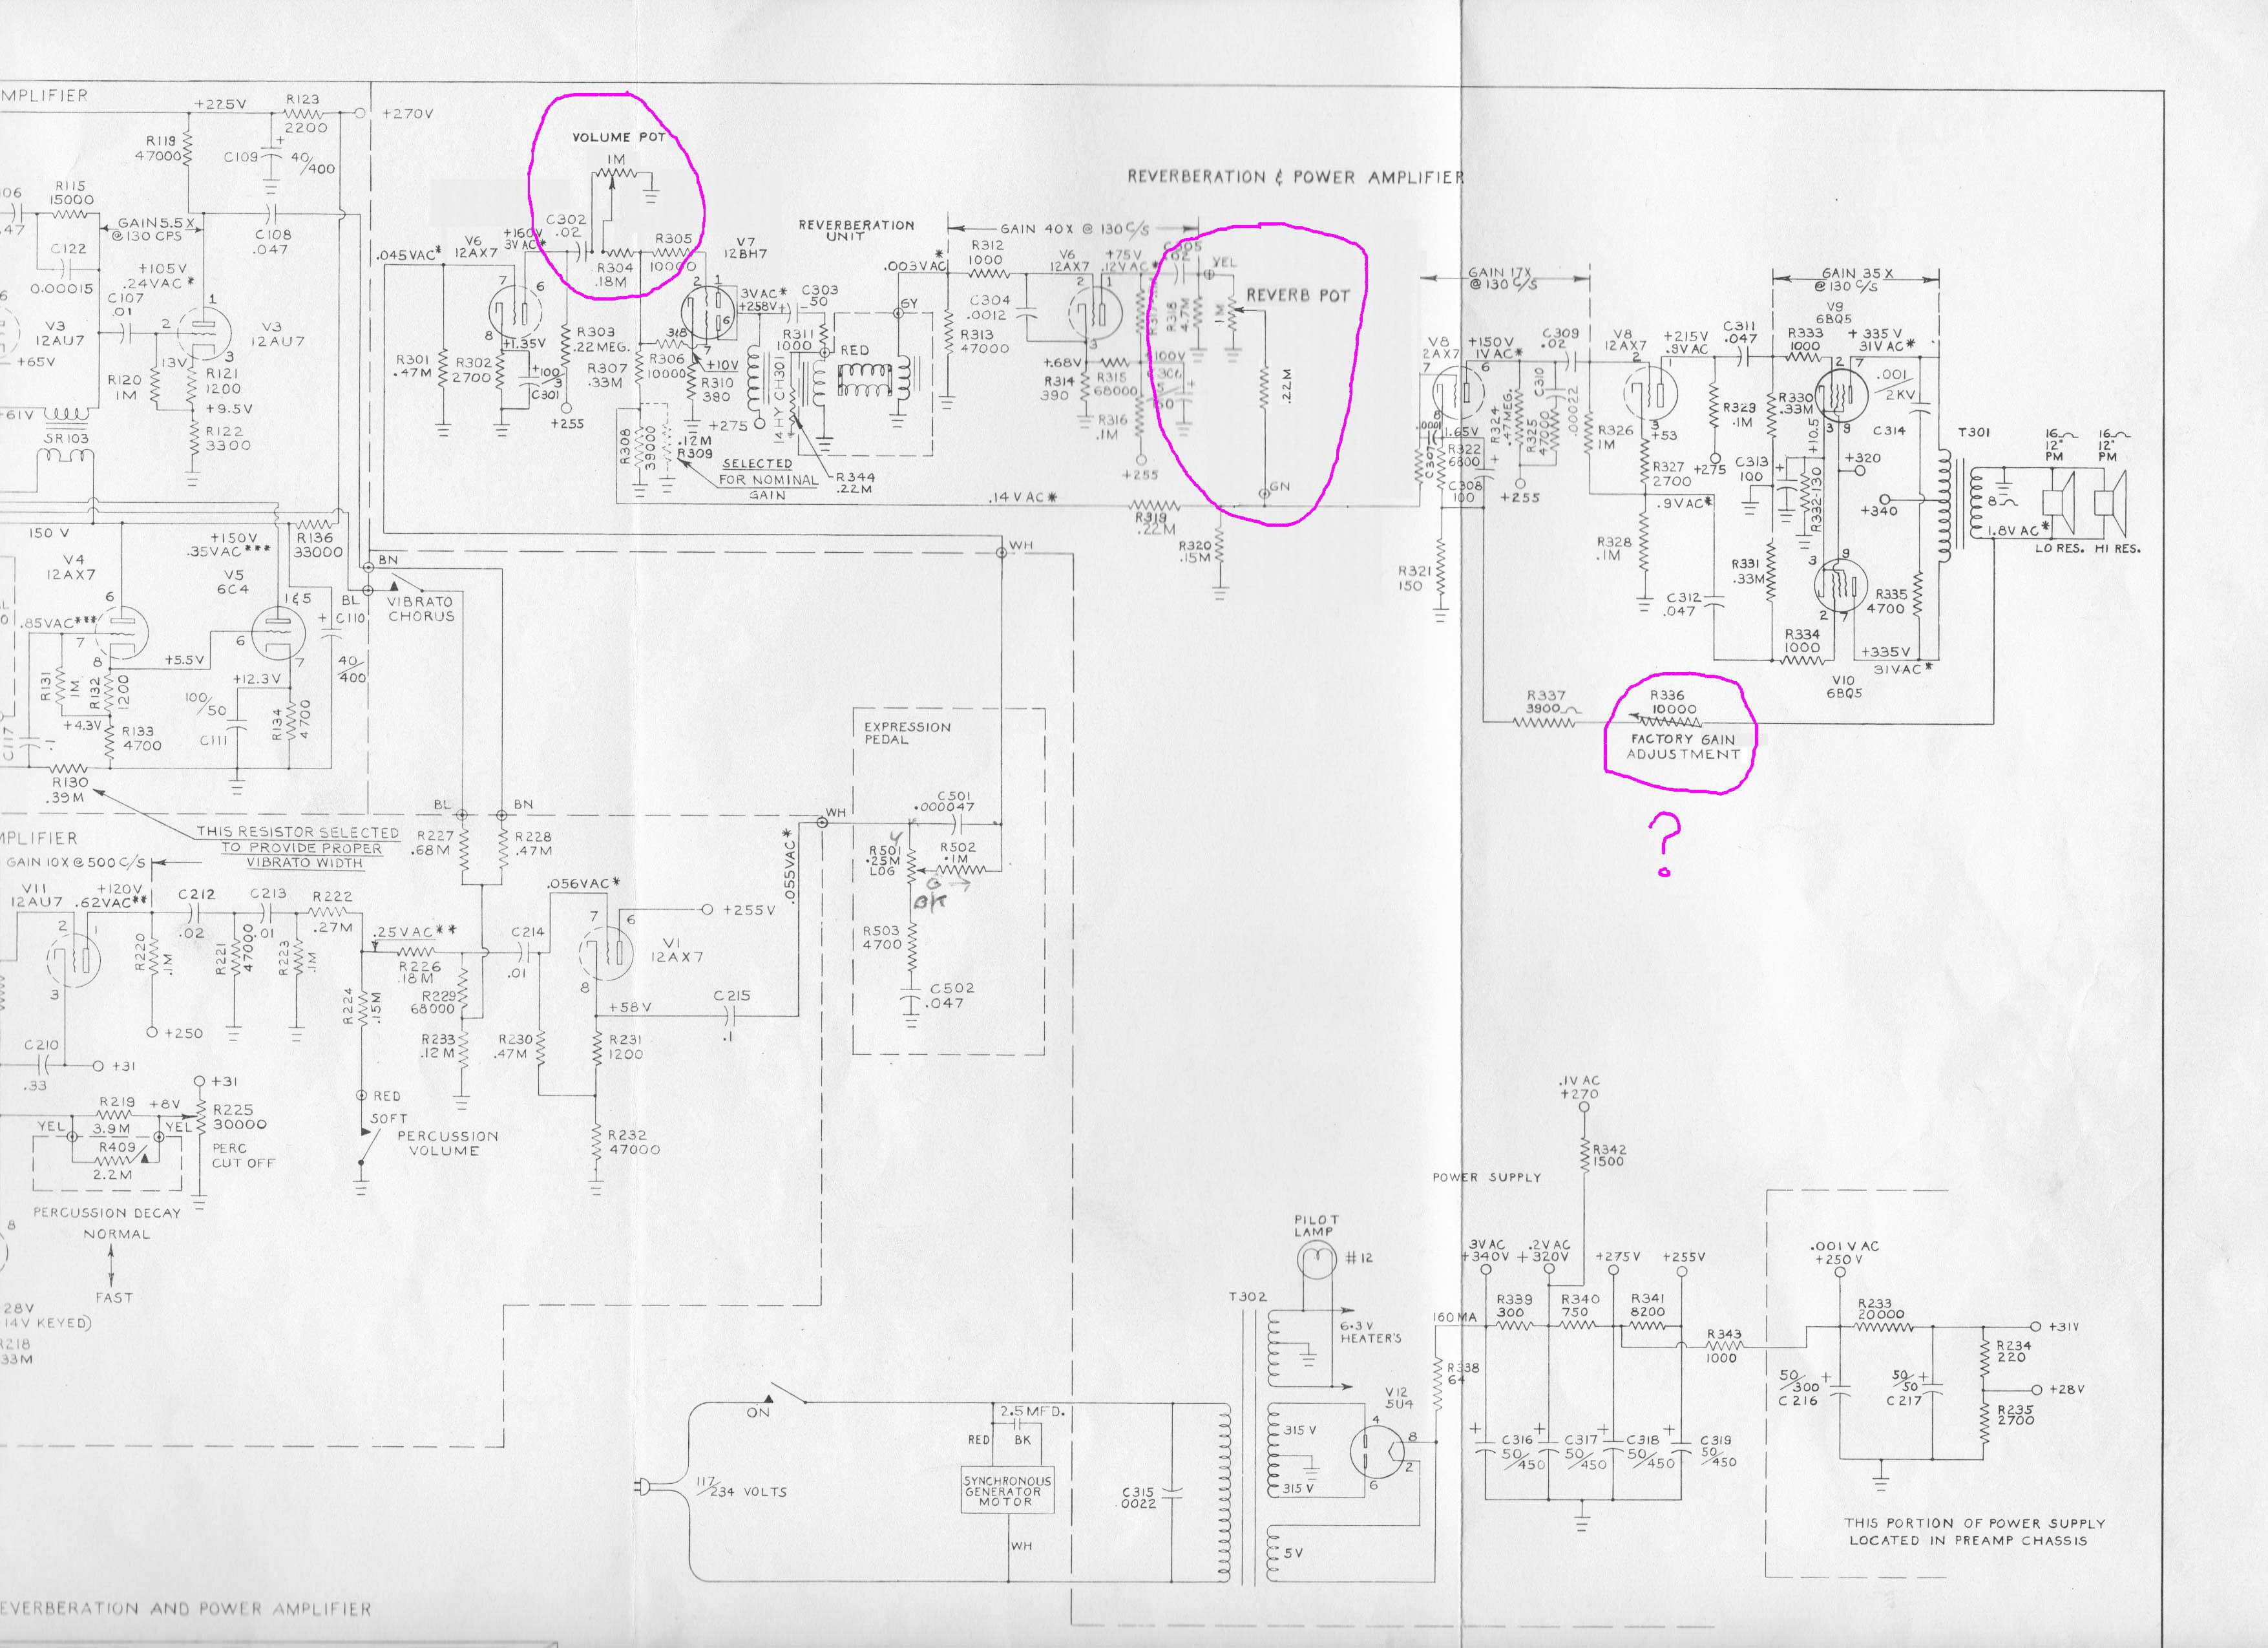 tia wiring diagram with 568a Wiring Diagram on Tx Wiring Diagram moreover B Cat 5 Wiring Diagram together with 568a Wiring Diagram together with Showthread as well 2003 Nissan Maxima Parts Diagram Ke Light.